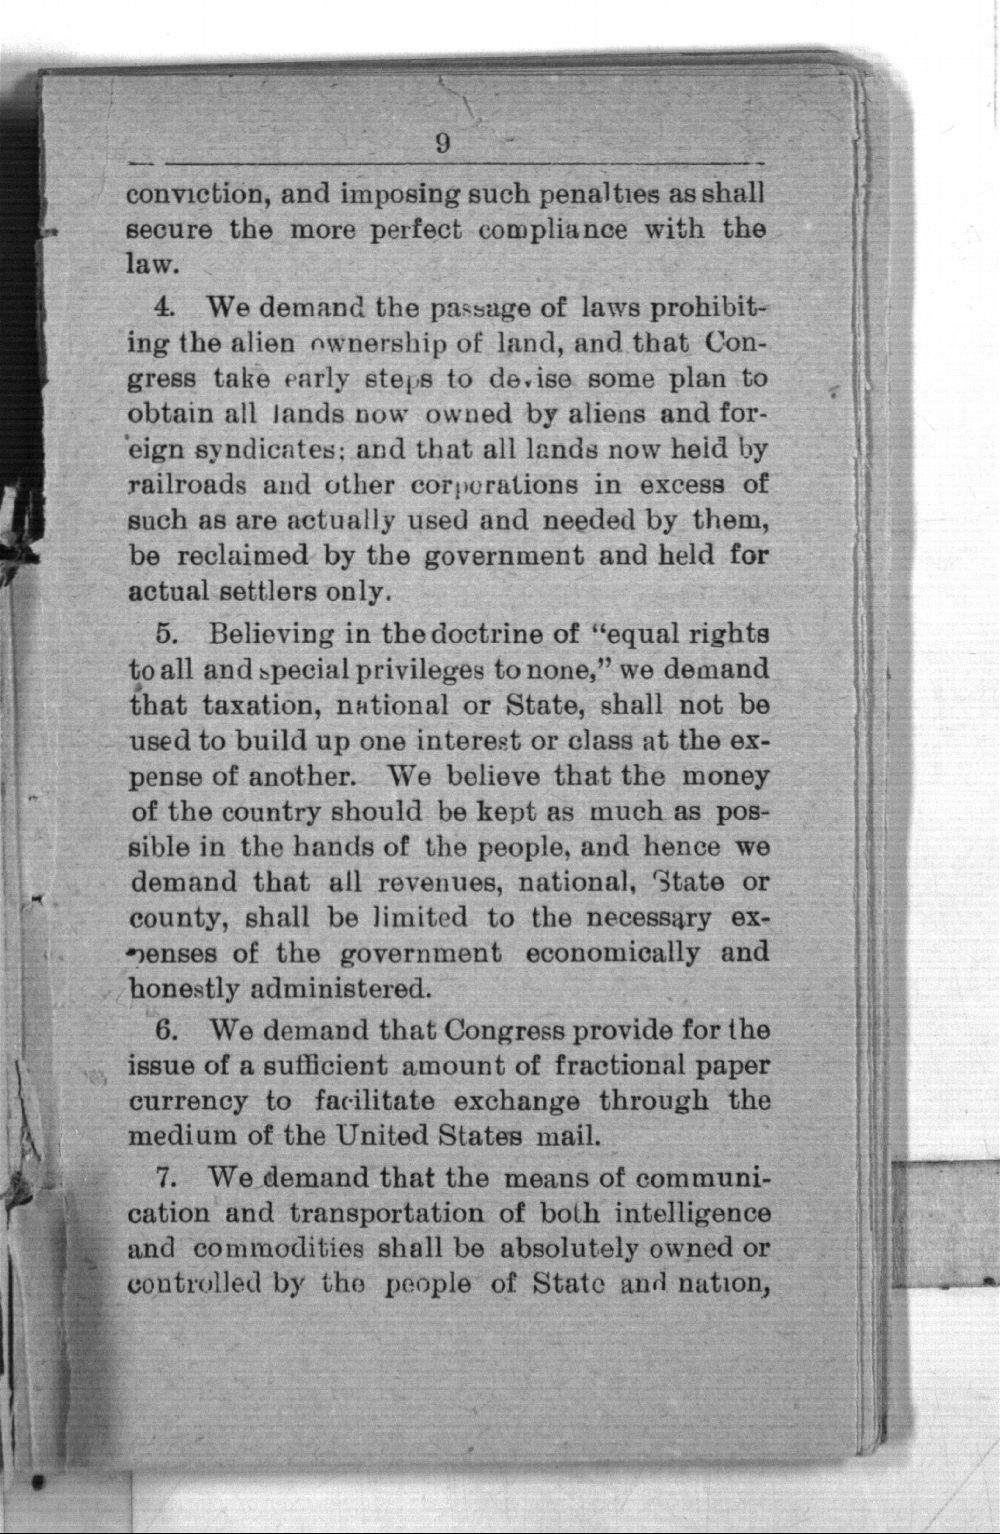 Declaration of principles, platform, constitution and by-laws of the National Citizens' Industrial Alliance and proceeding of the National Assembly held at Topeka, January 13 to 17, 1891 - 9